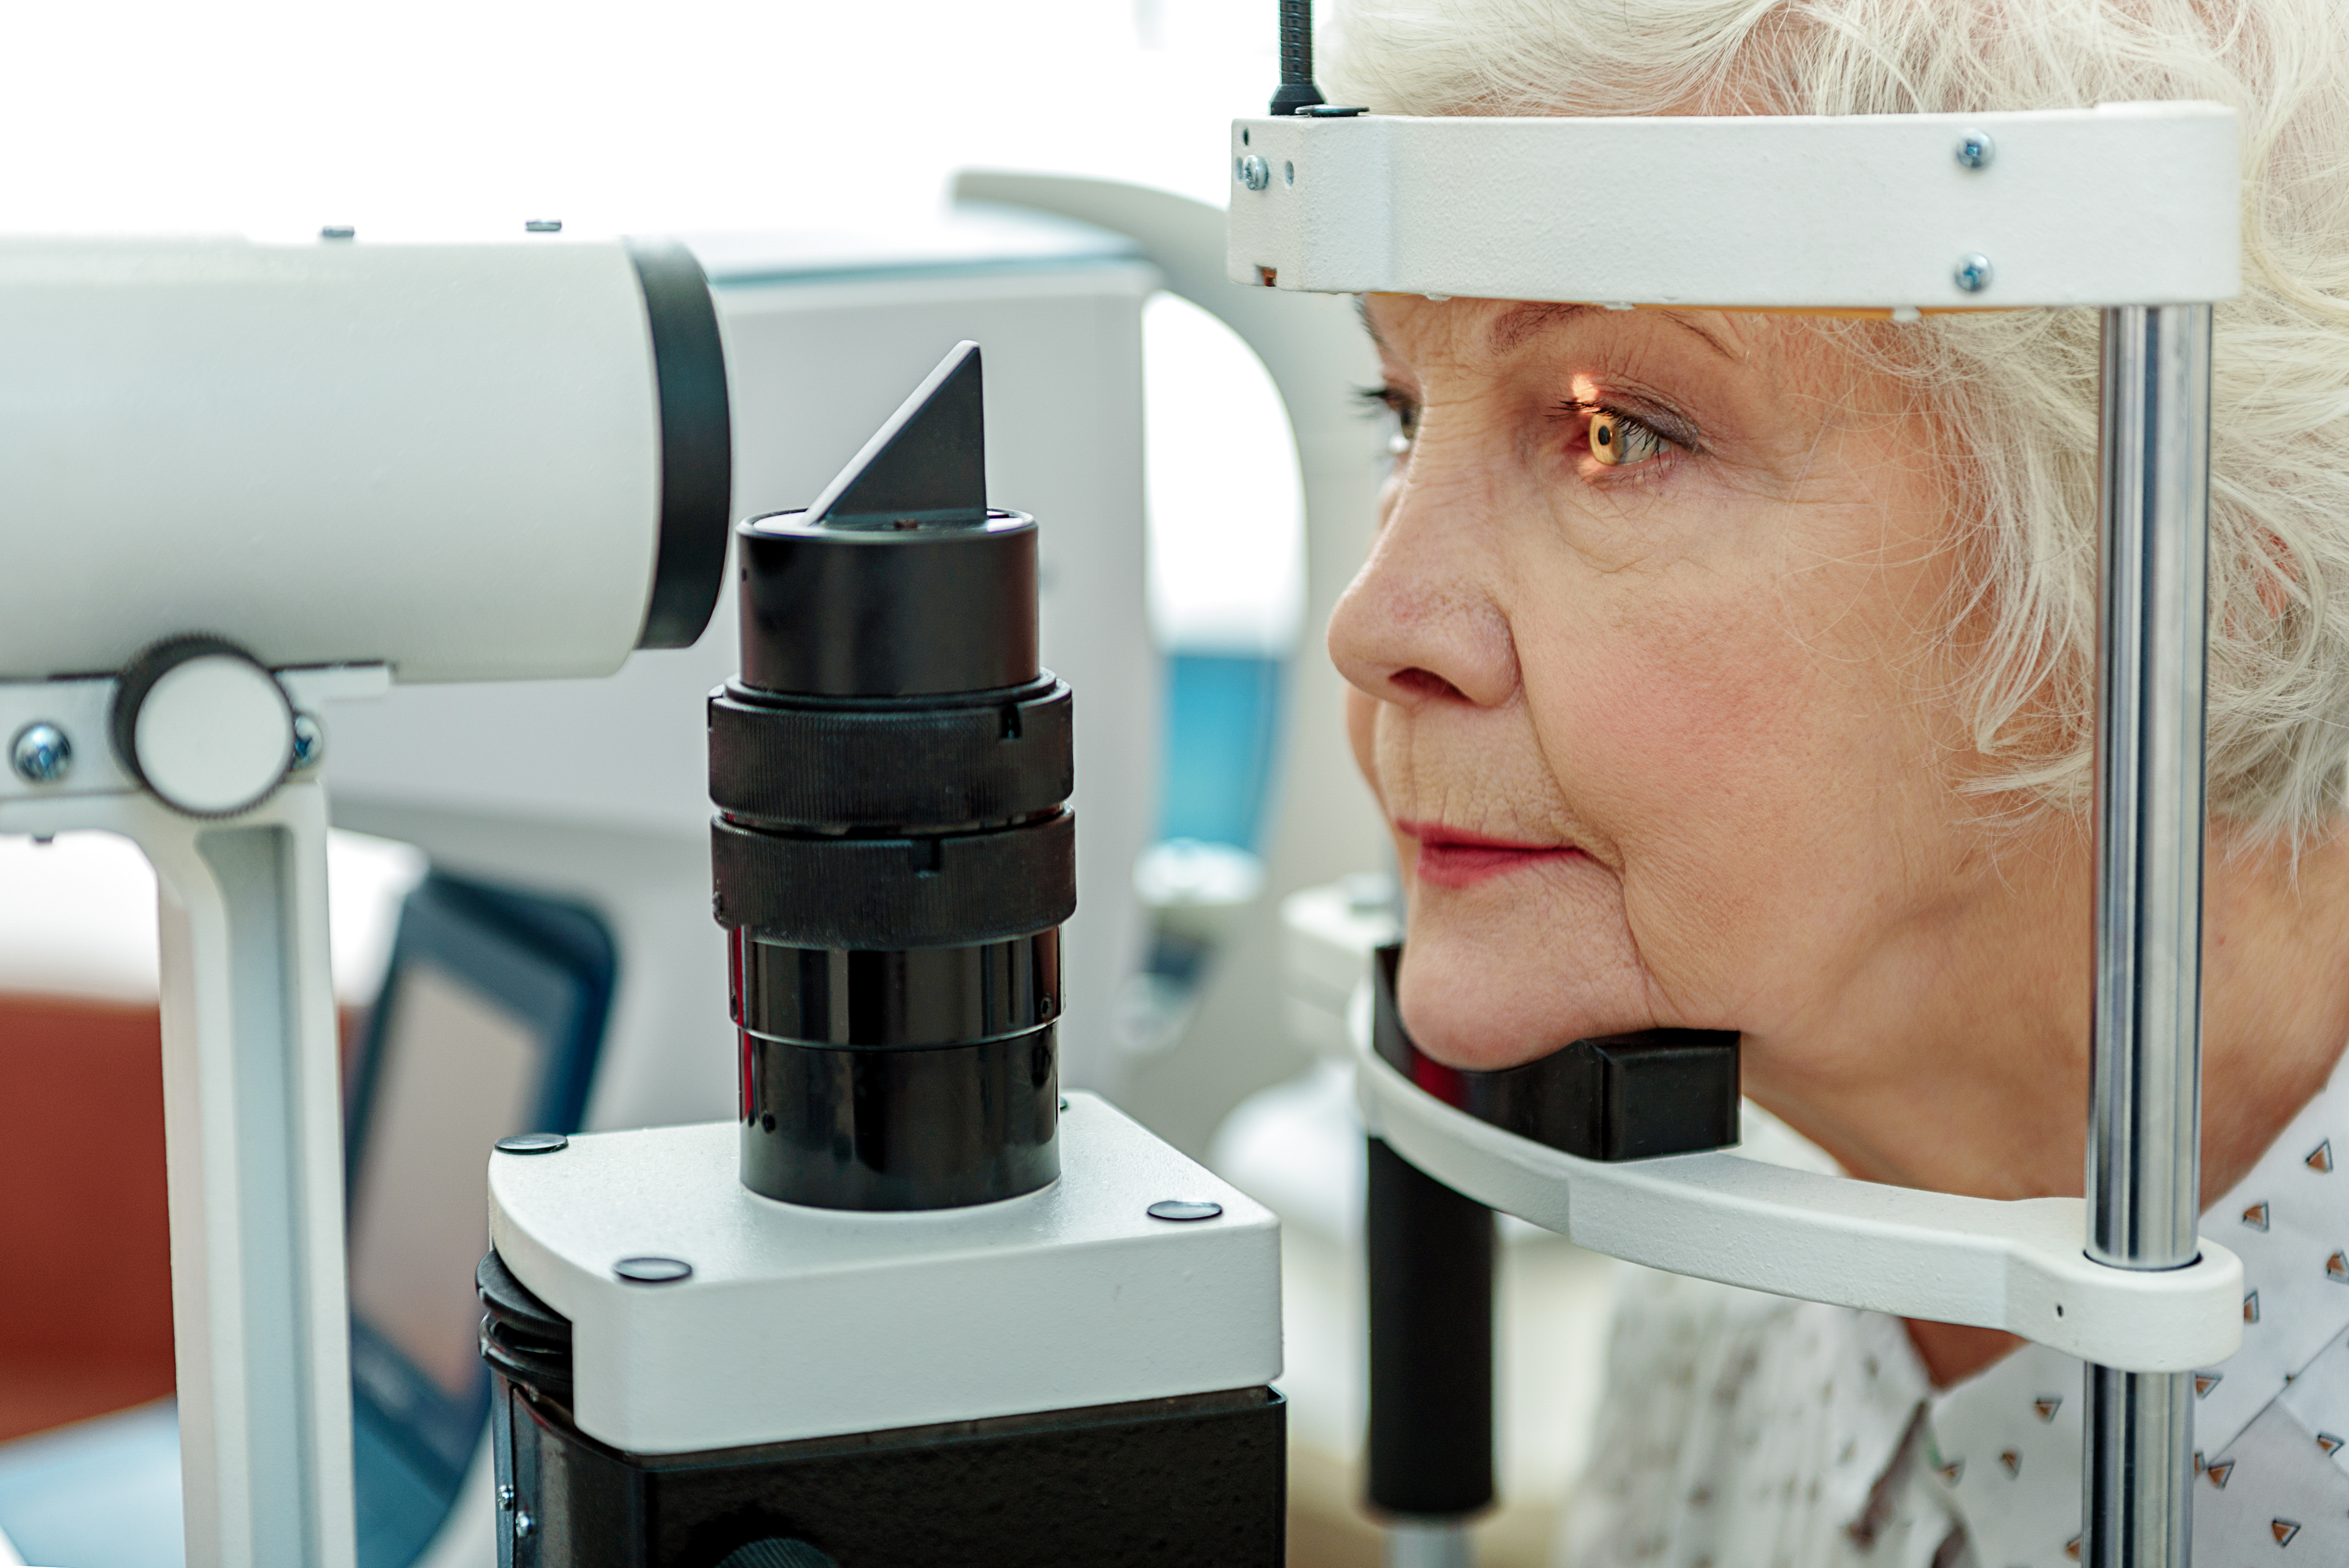 The free event will also provide eye test activities and information on eye health in older age with the RCN Opthalmic Forum.